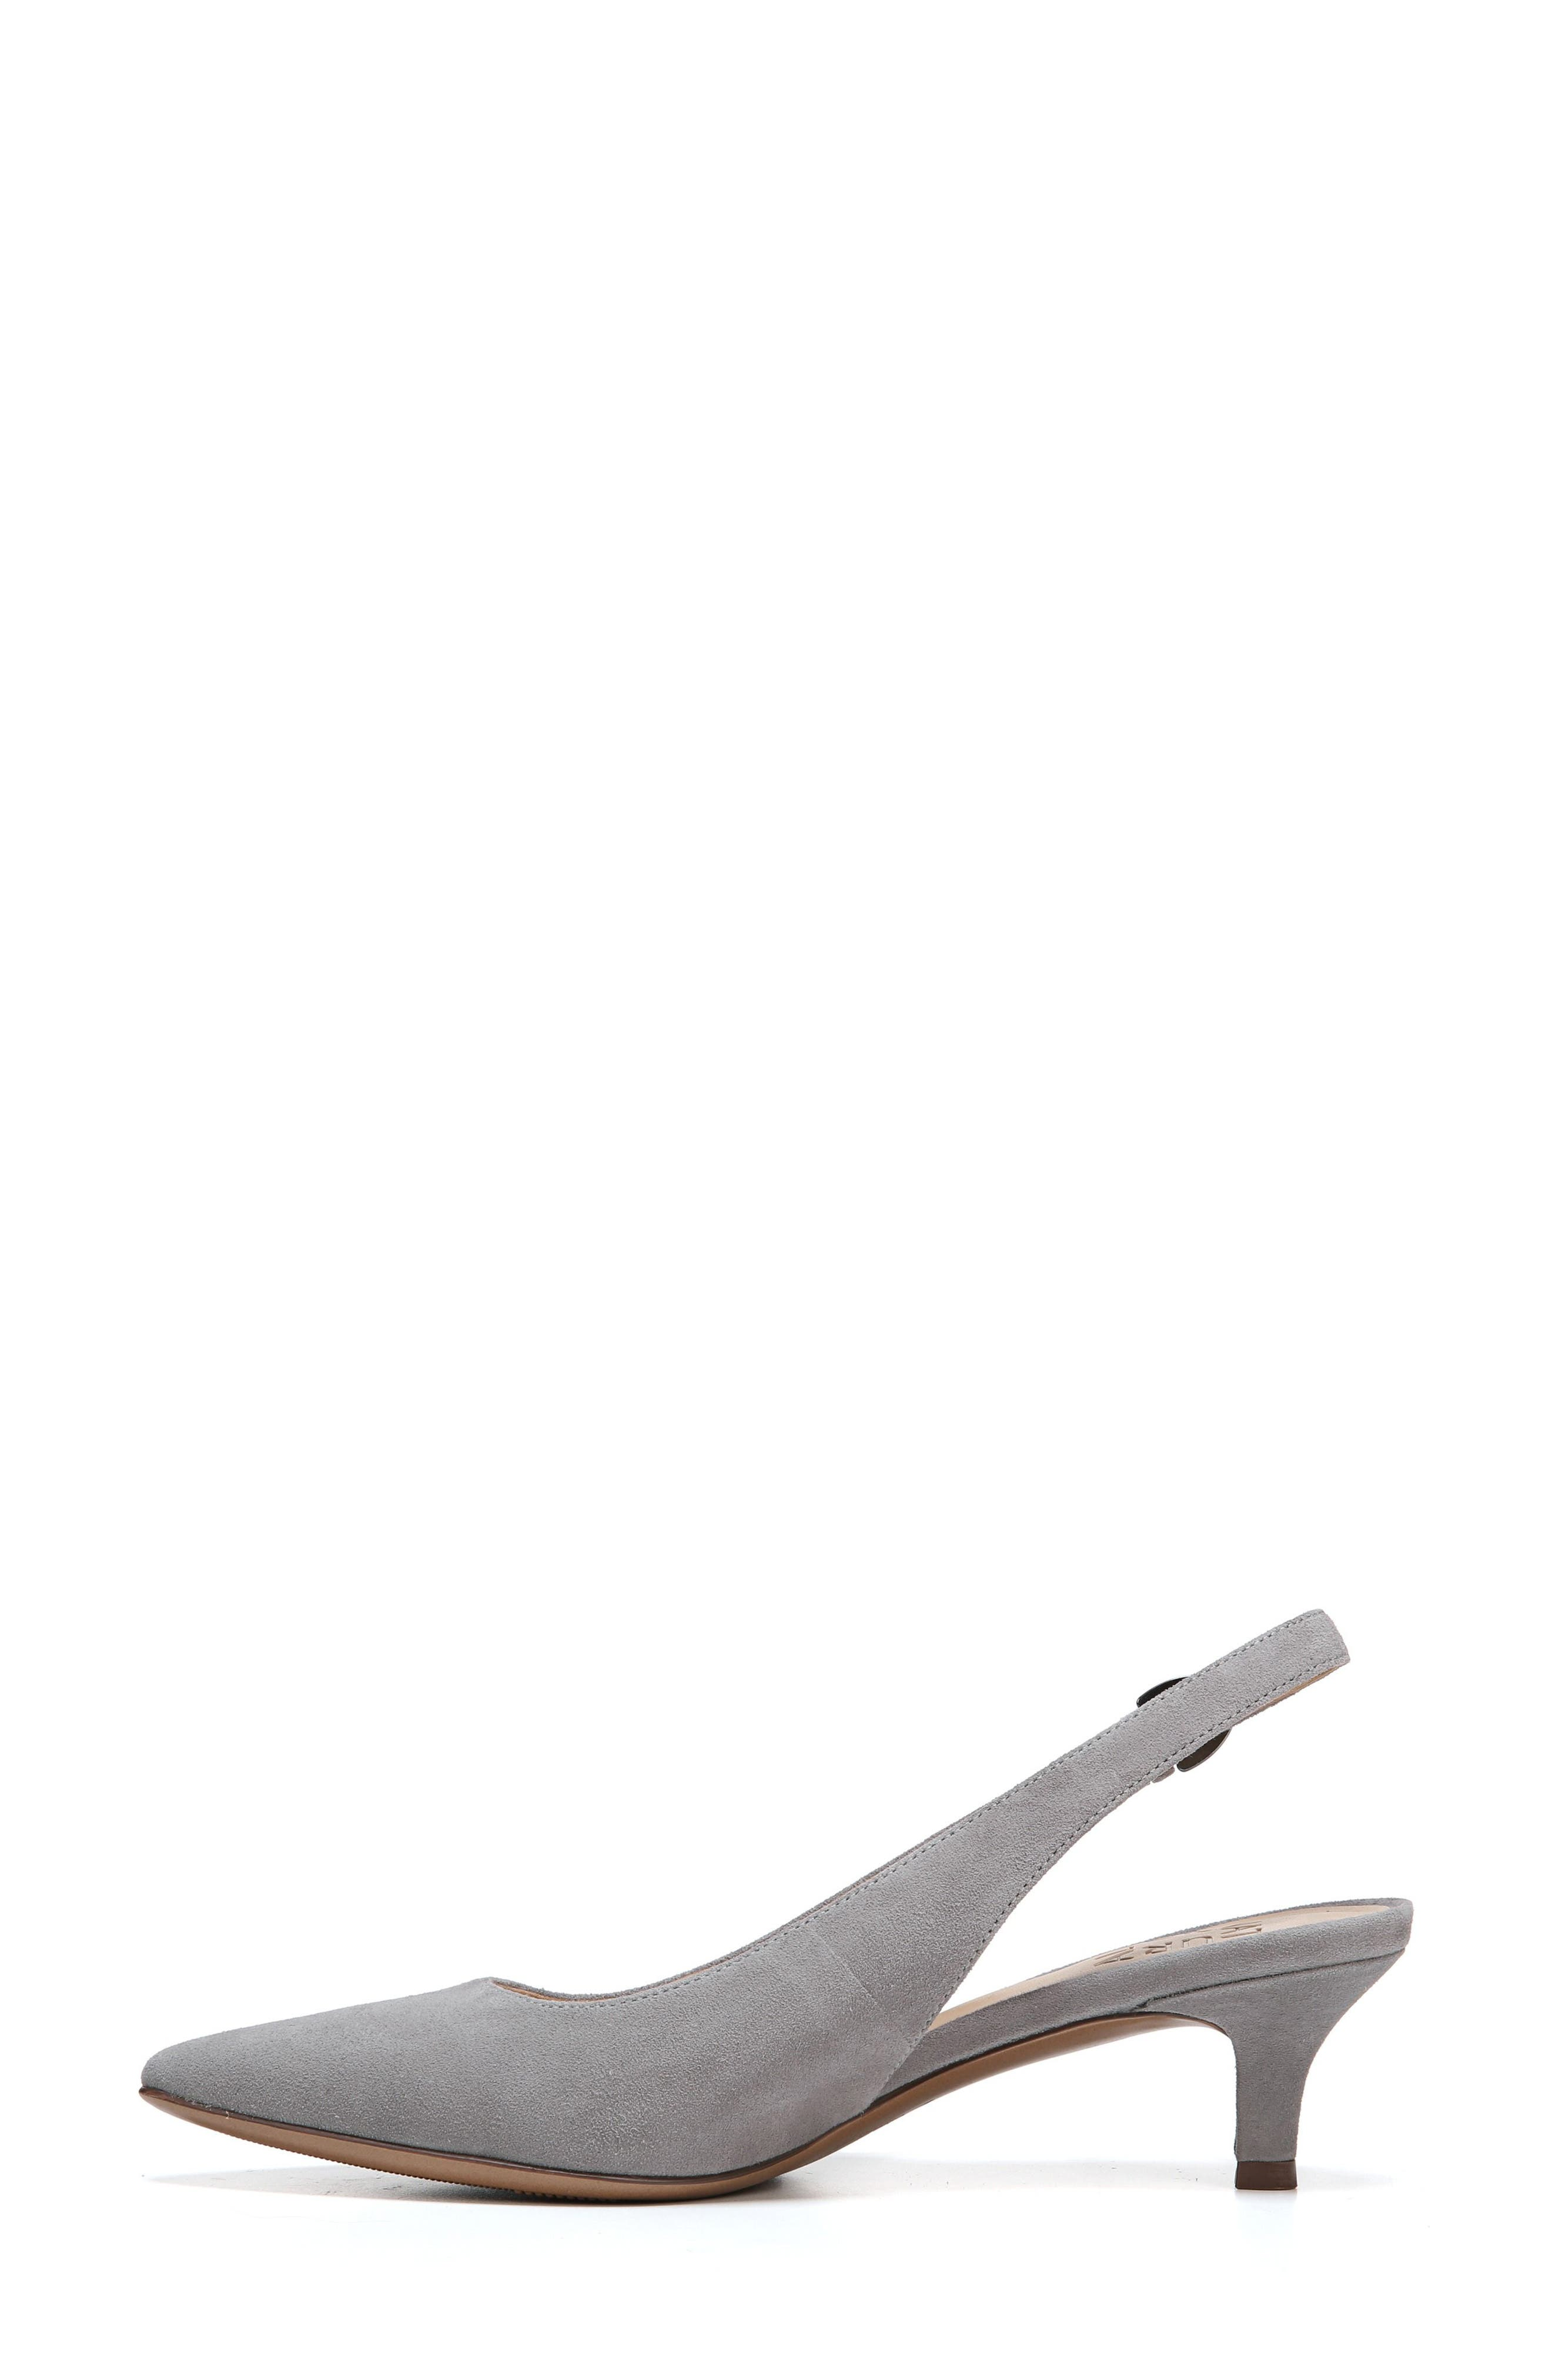 Slingback Pump,                             Alternate thumbnail 3, color,                             GREY SUEDE